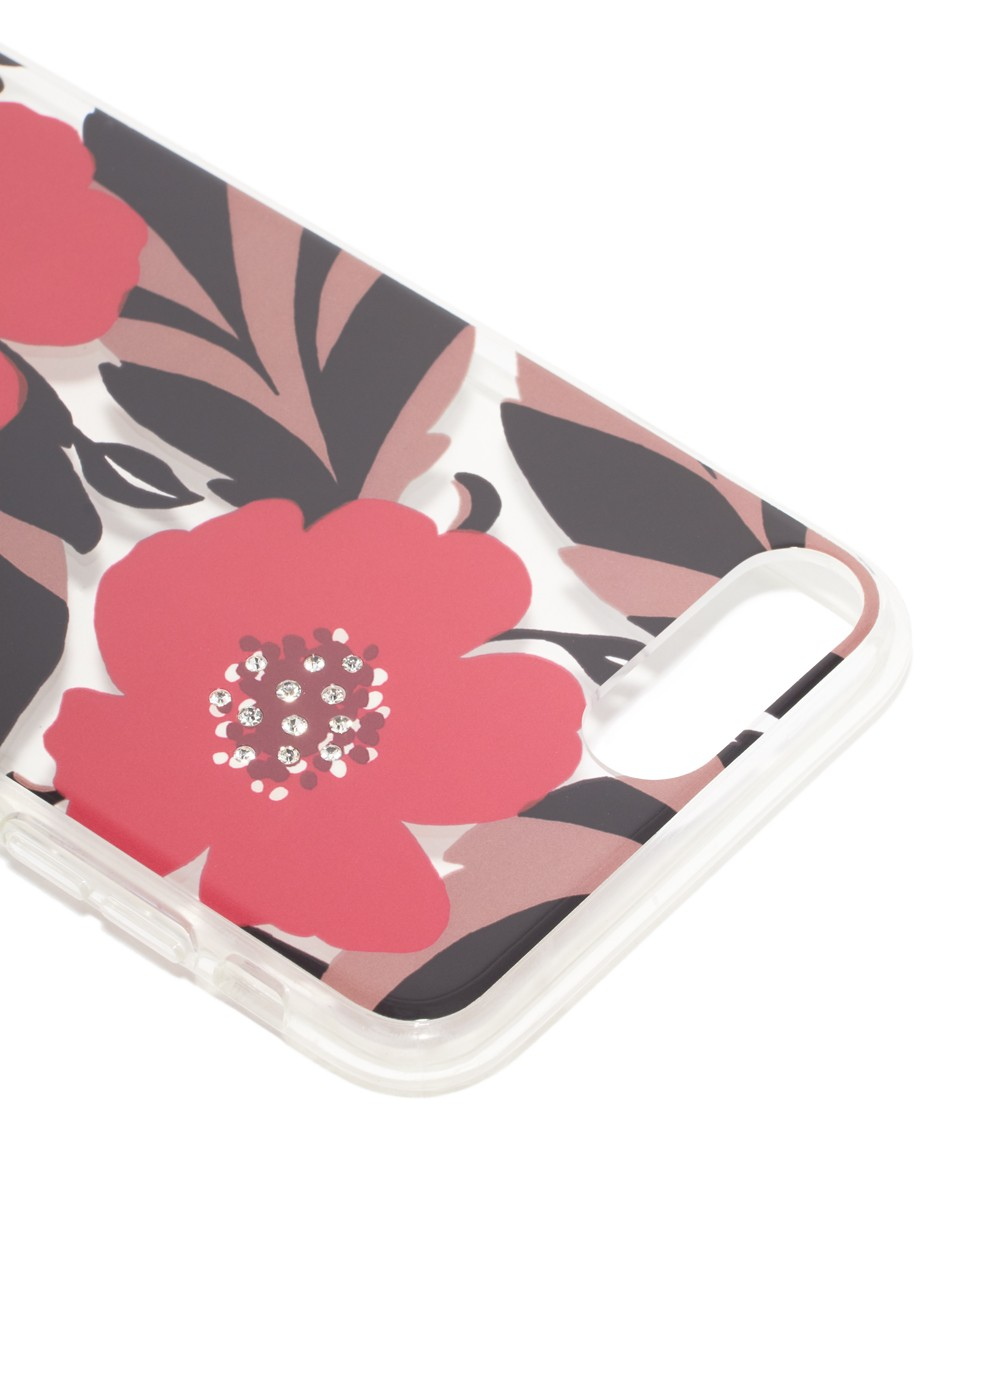 kate spade NEW YORK|ケイトスペードニューヨーク|IPHONE CASES|アイフォンケース|iPhone8PLUS CASE JEWELED POPPY FIELD